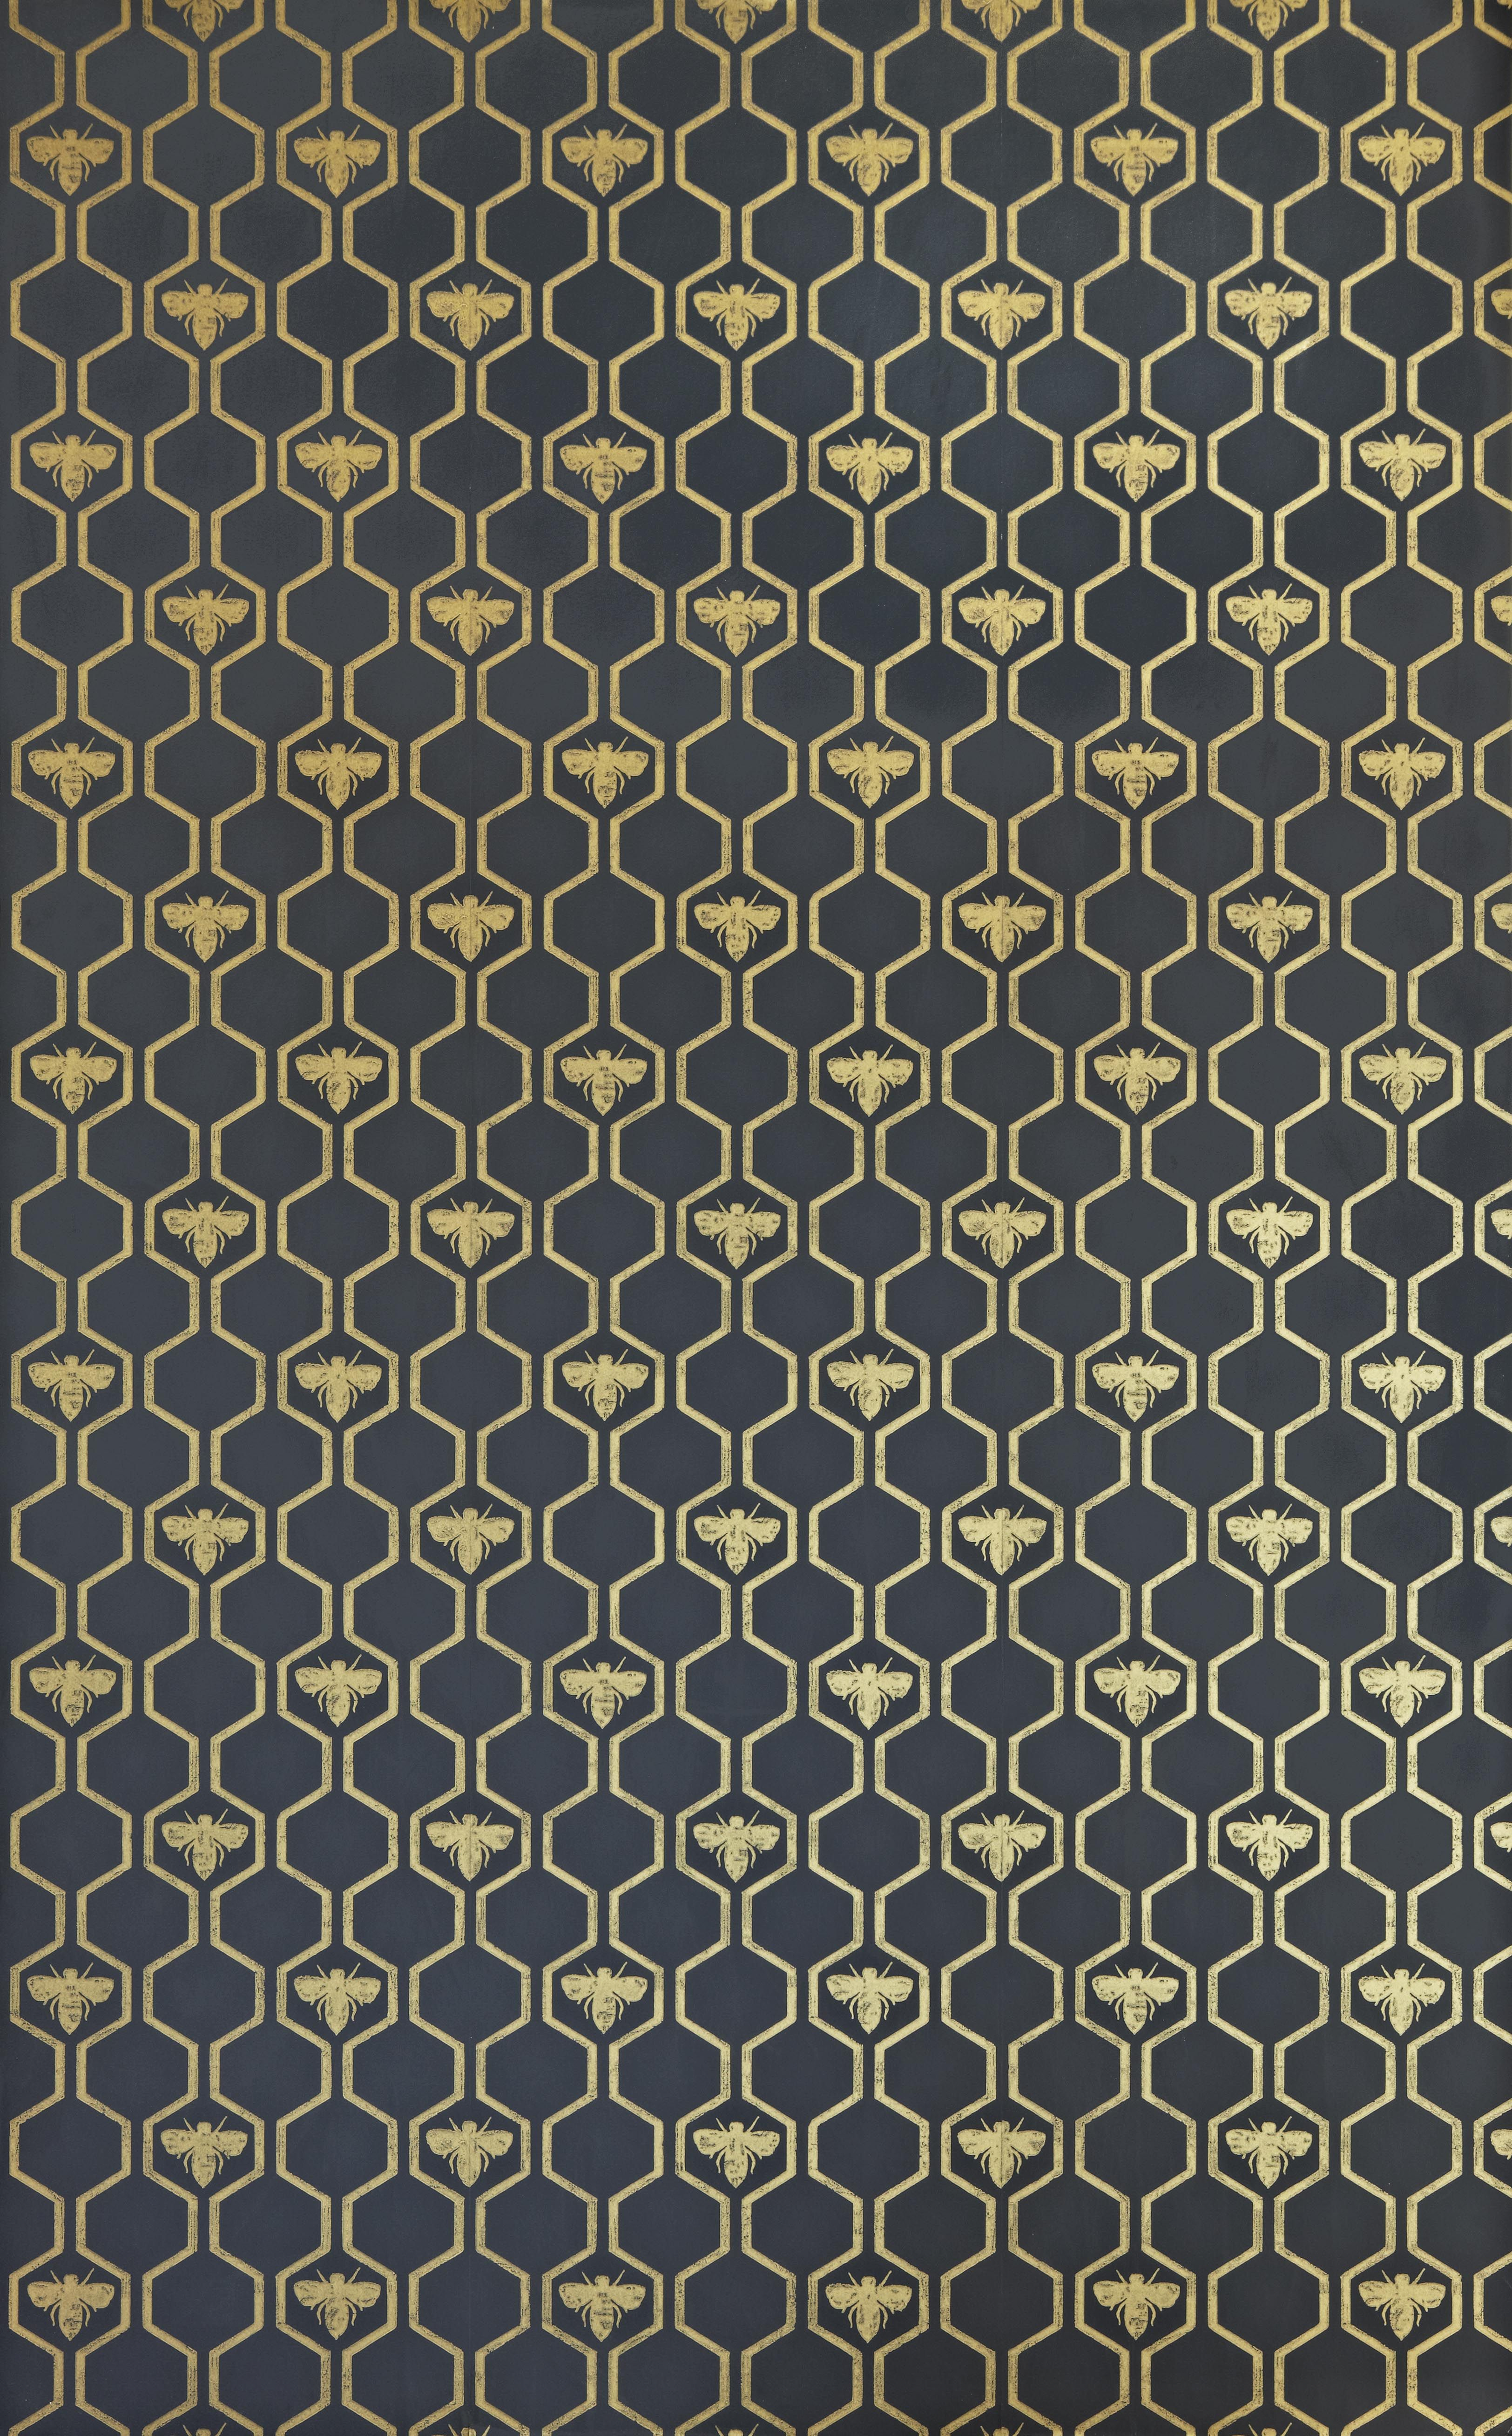 Honey Bees Wallpaper from Barneby Gates Charcoal